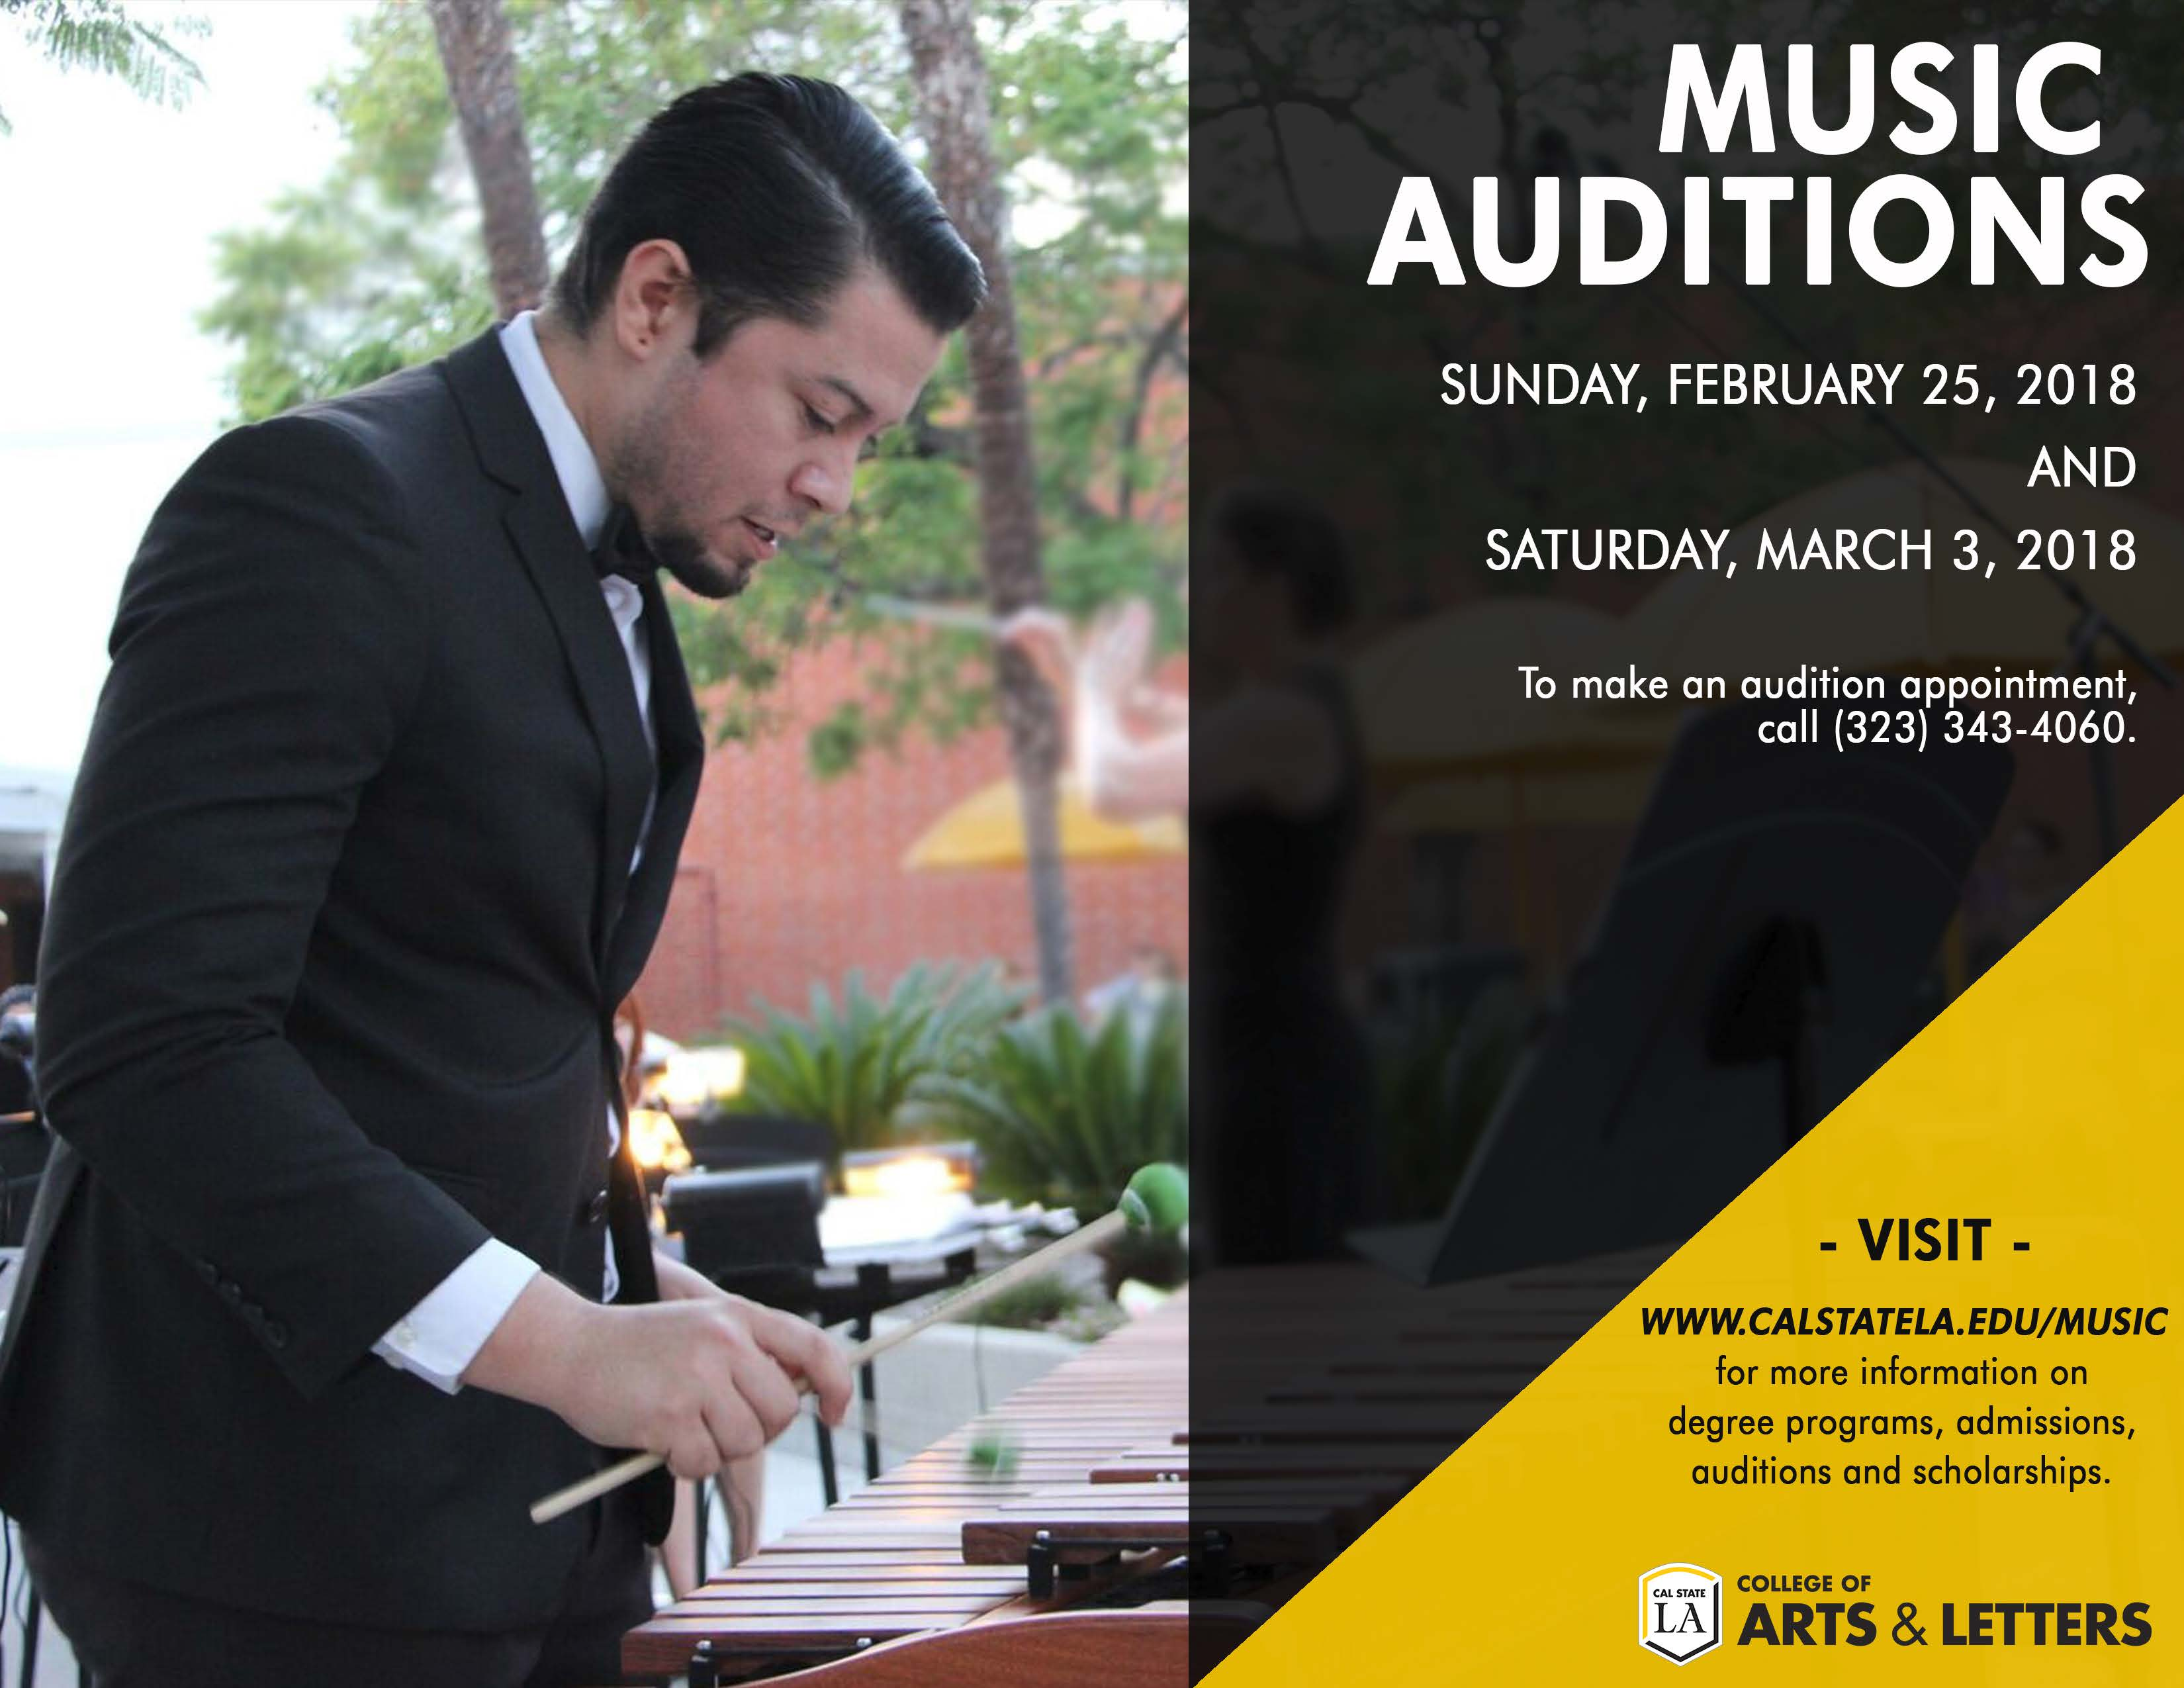 Music Auditions for Fall 2018: February 25 and March 3